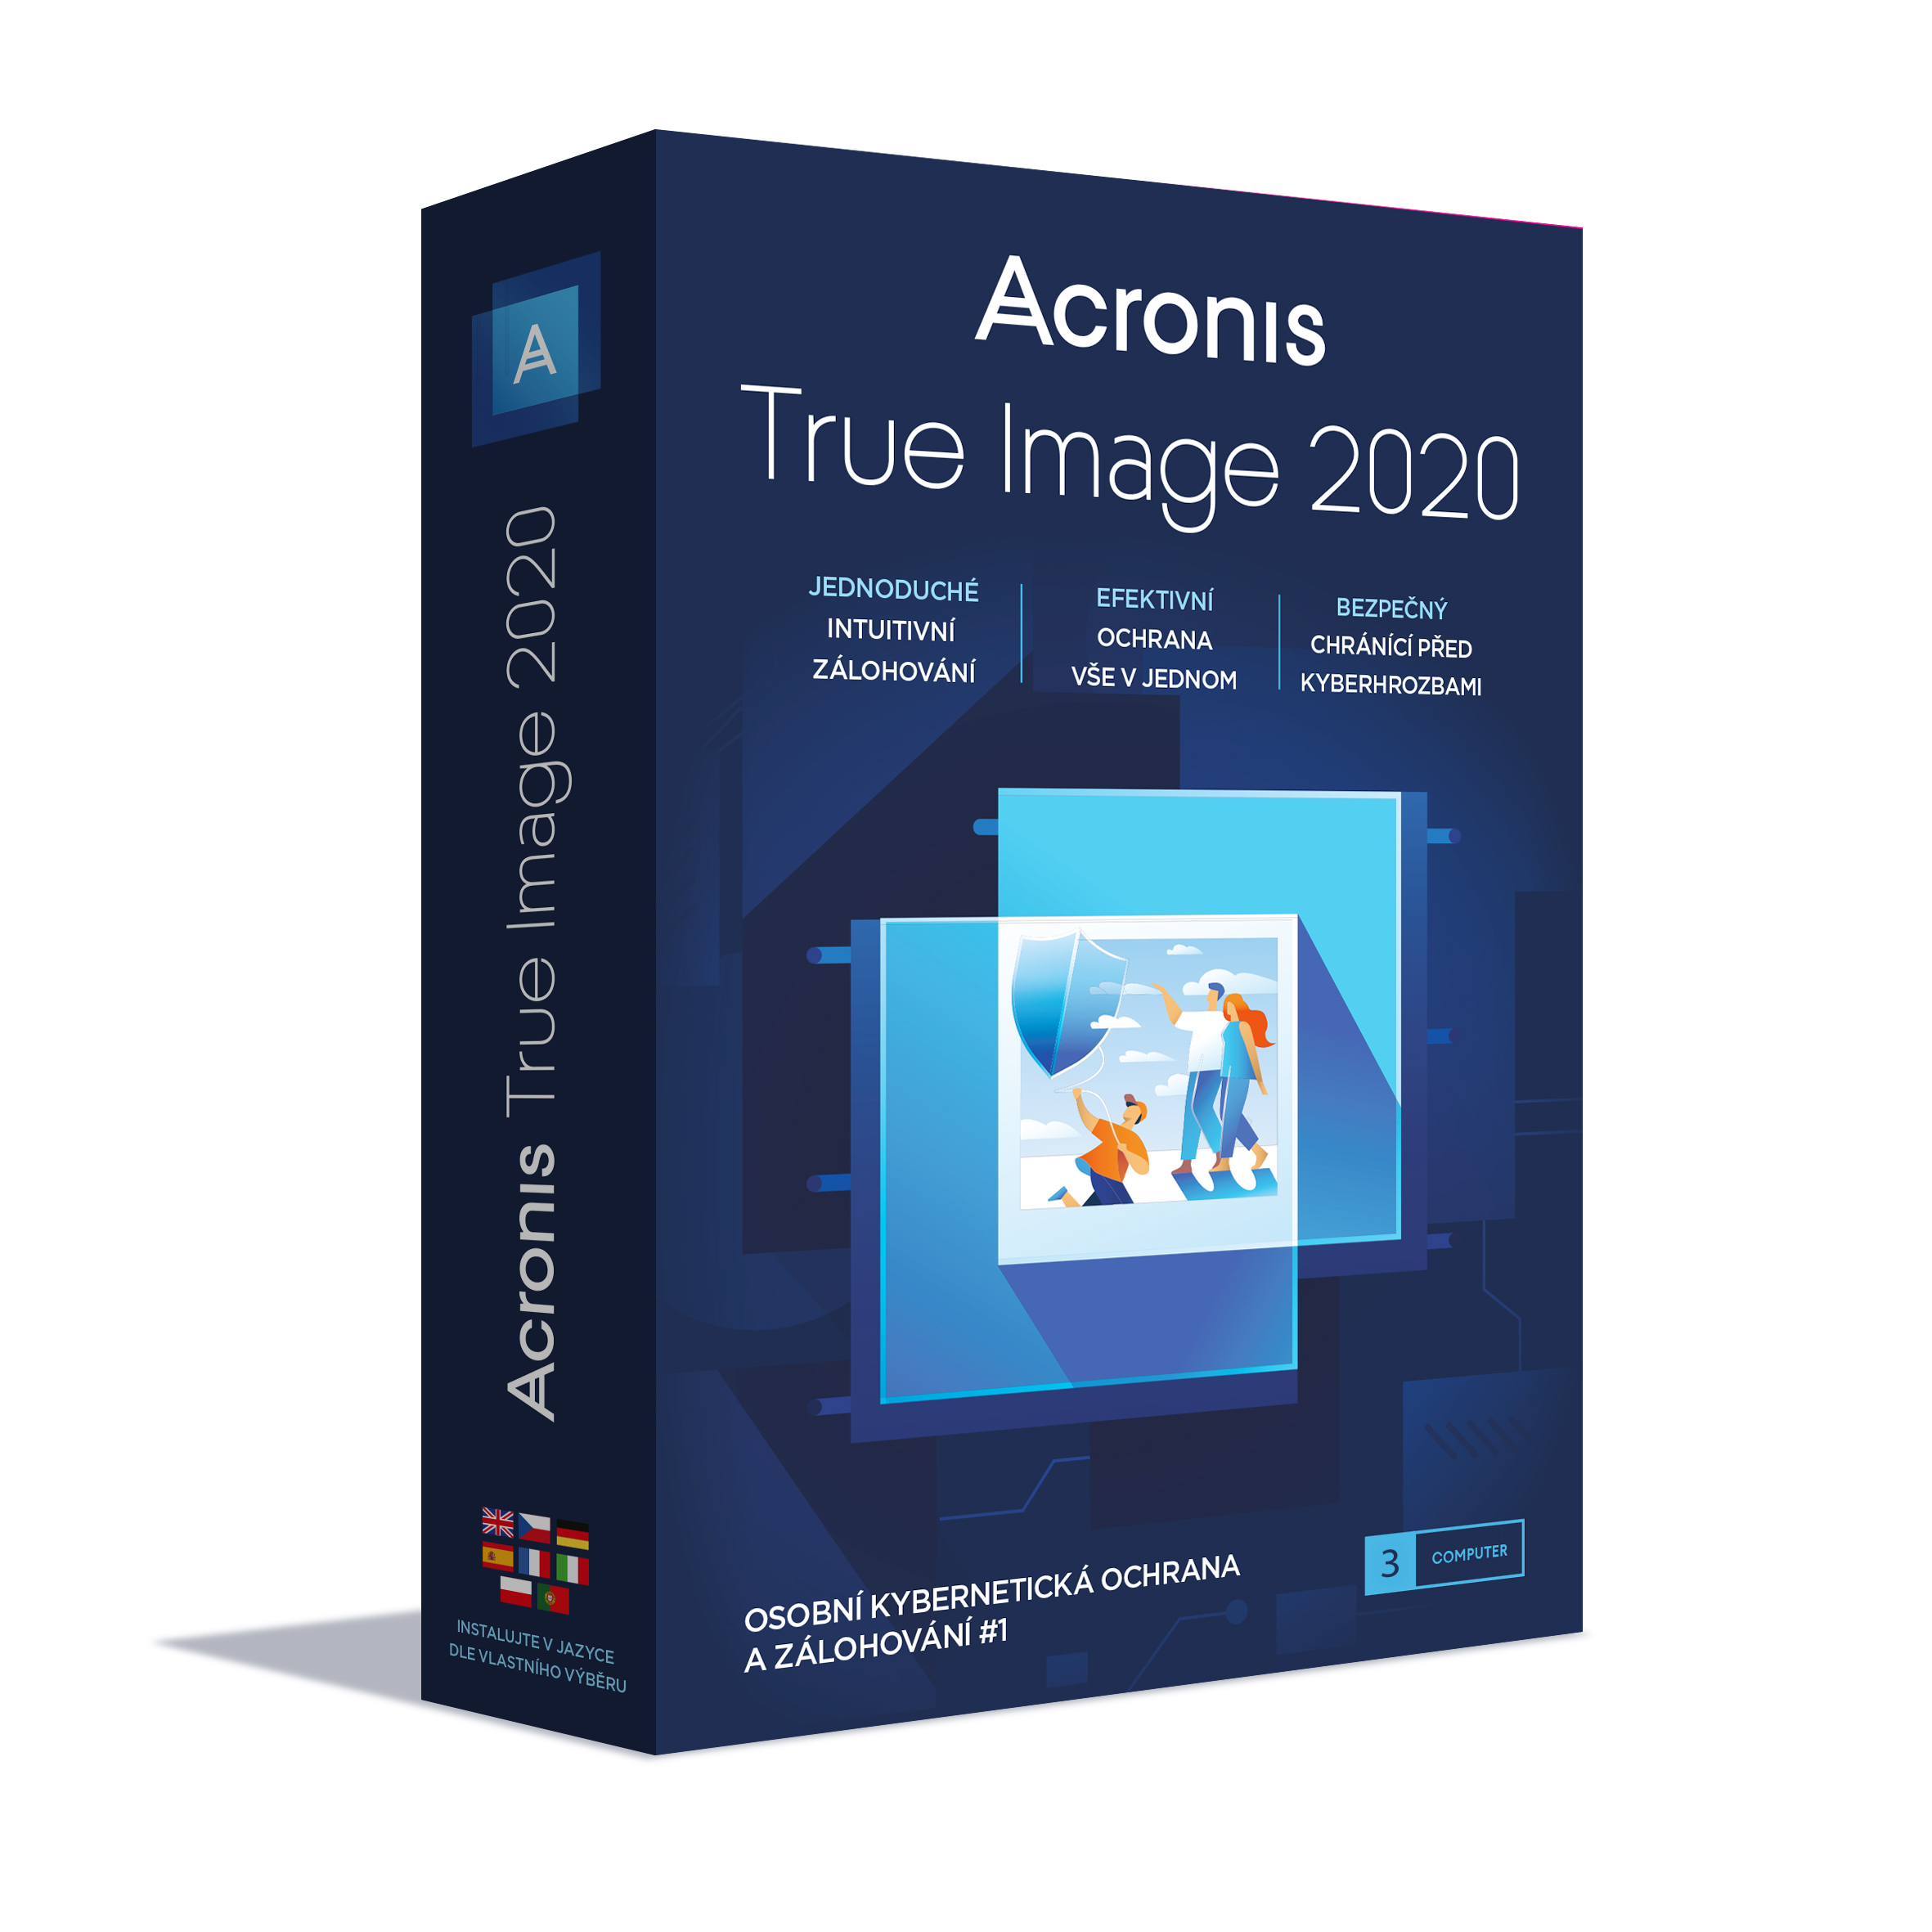 Acronis True Image 2020 - 3 Computers - BOX